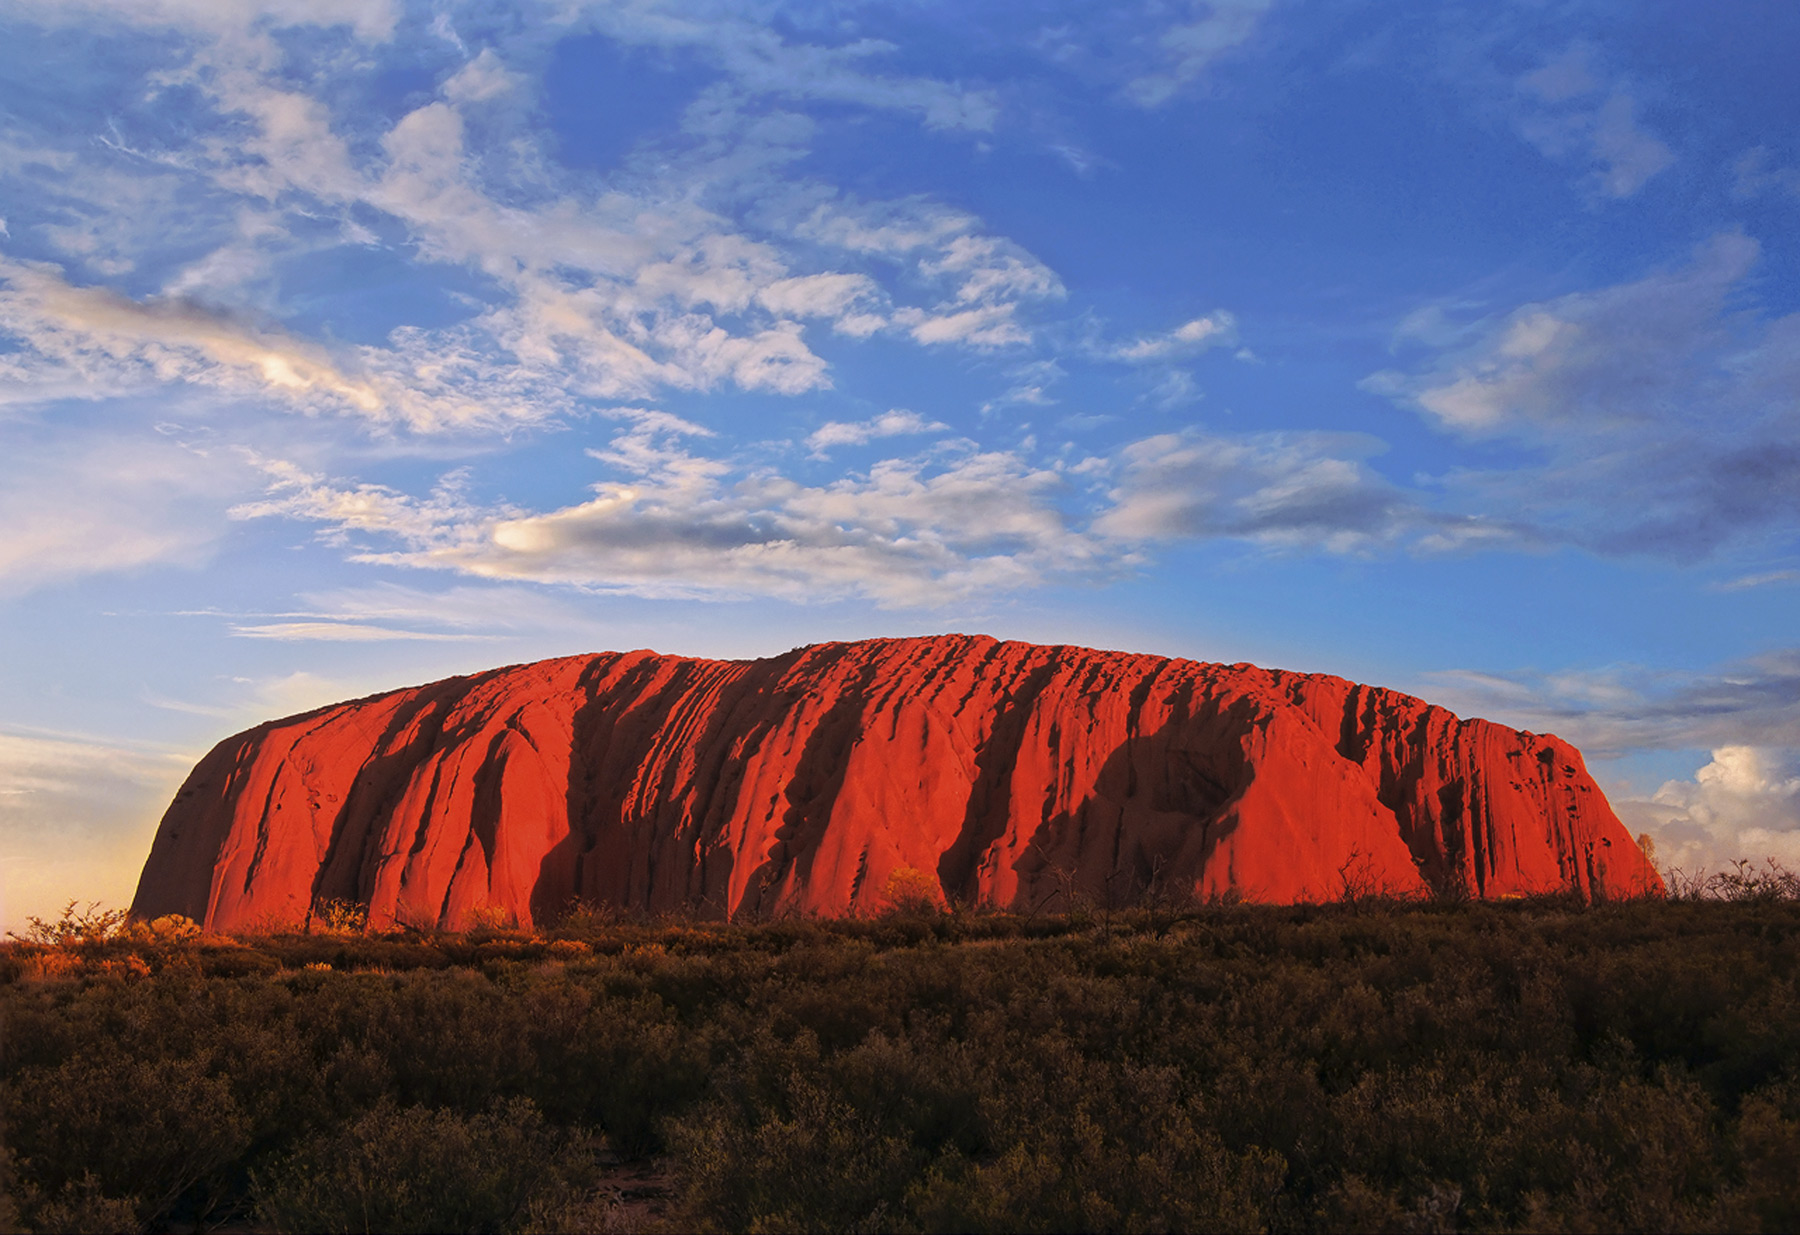 Ayers Rock, Ulhuru, Red Centre, Australia, scarlet, iconic, slab, rock, monolith, visitors, trek, summit, evening, sunse, photo